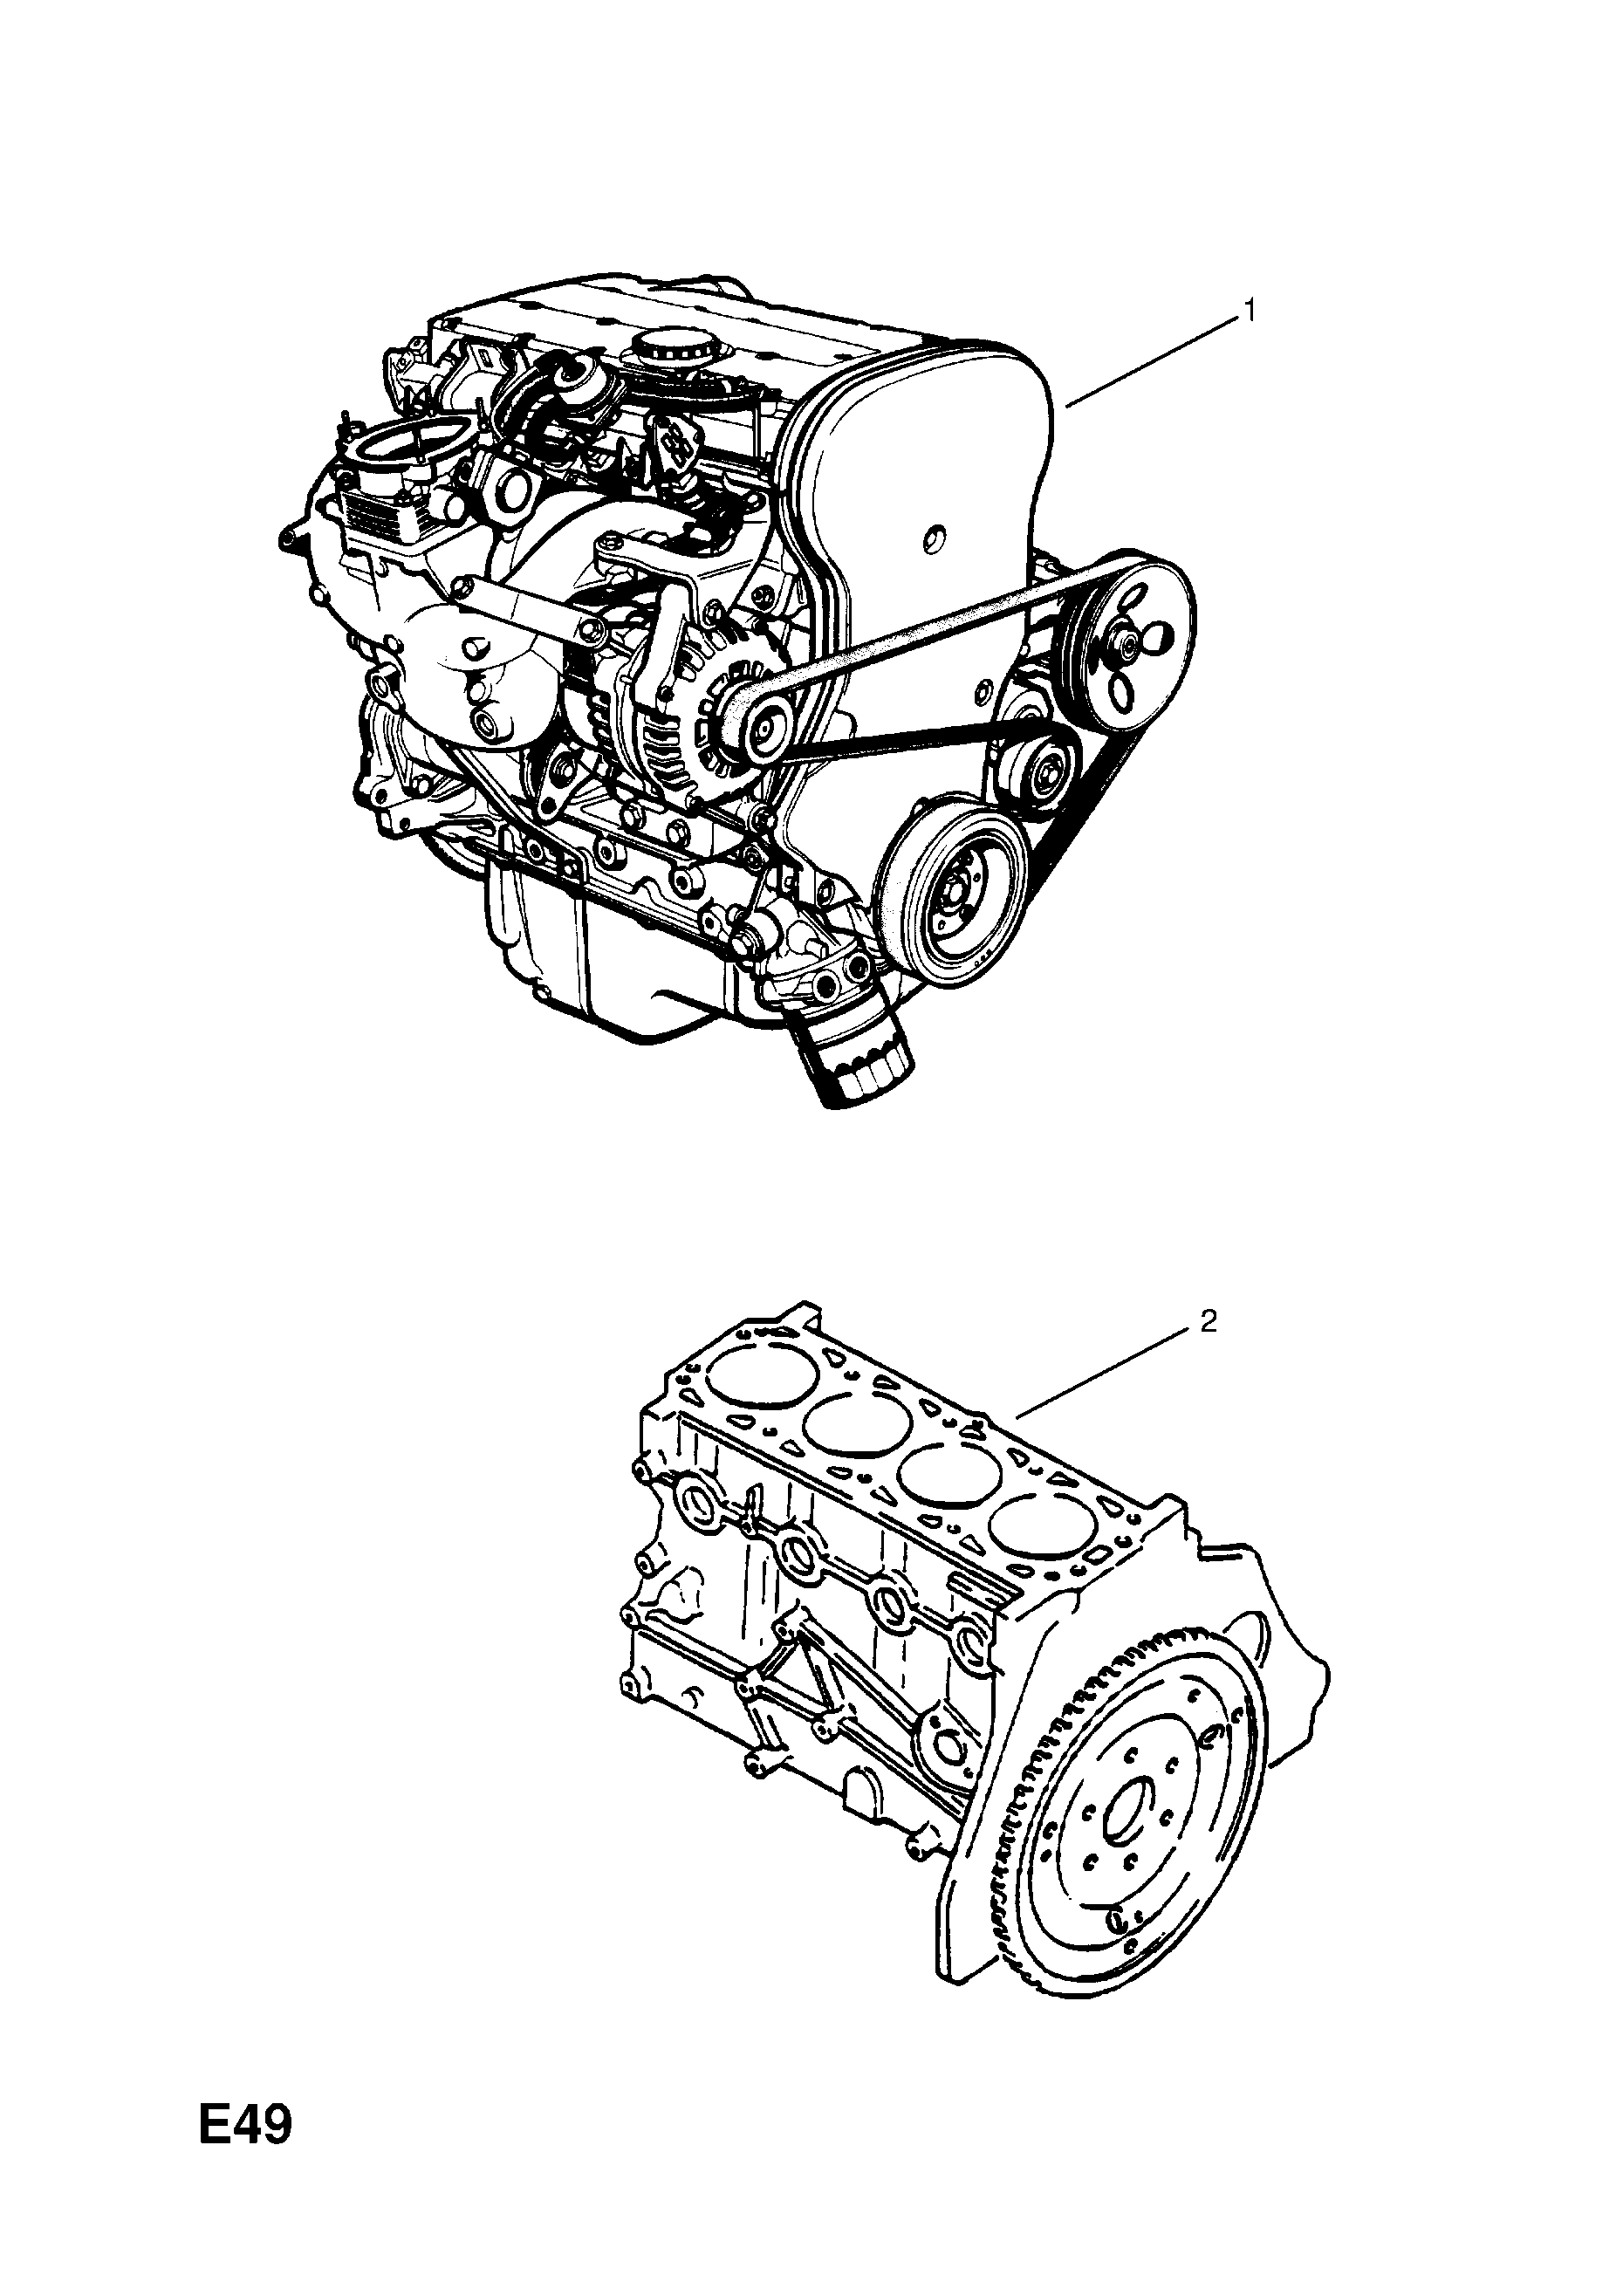 ENGINE ASSEMBLY OPEL VECTRA-B